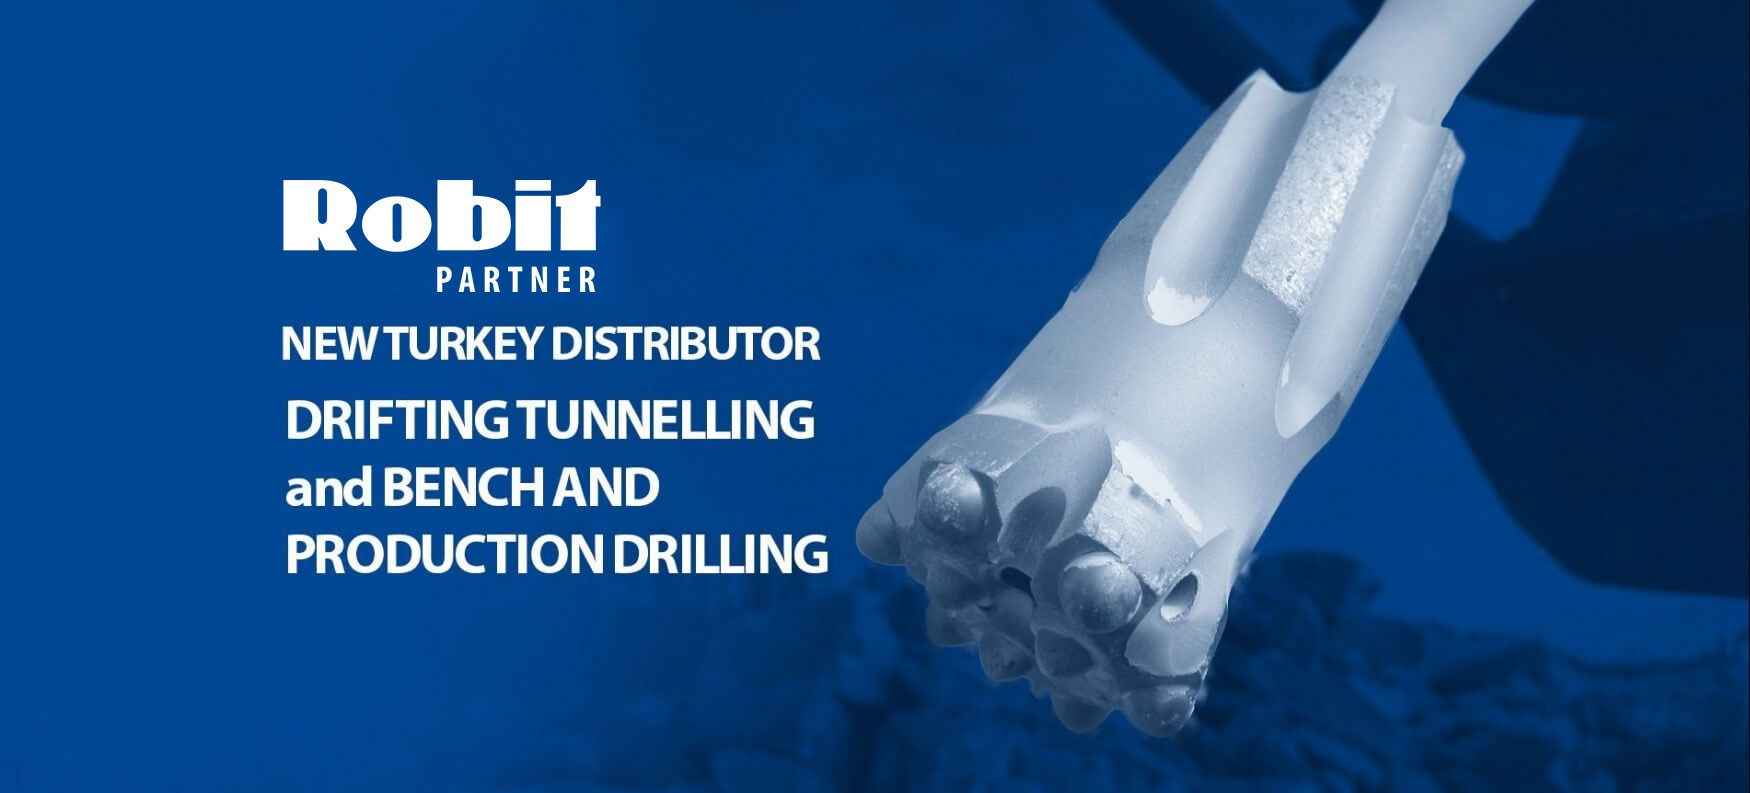 Robit New Turkey Distributer DriftingTunnelling and Benchand Production Drilling